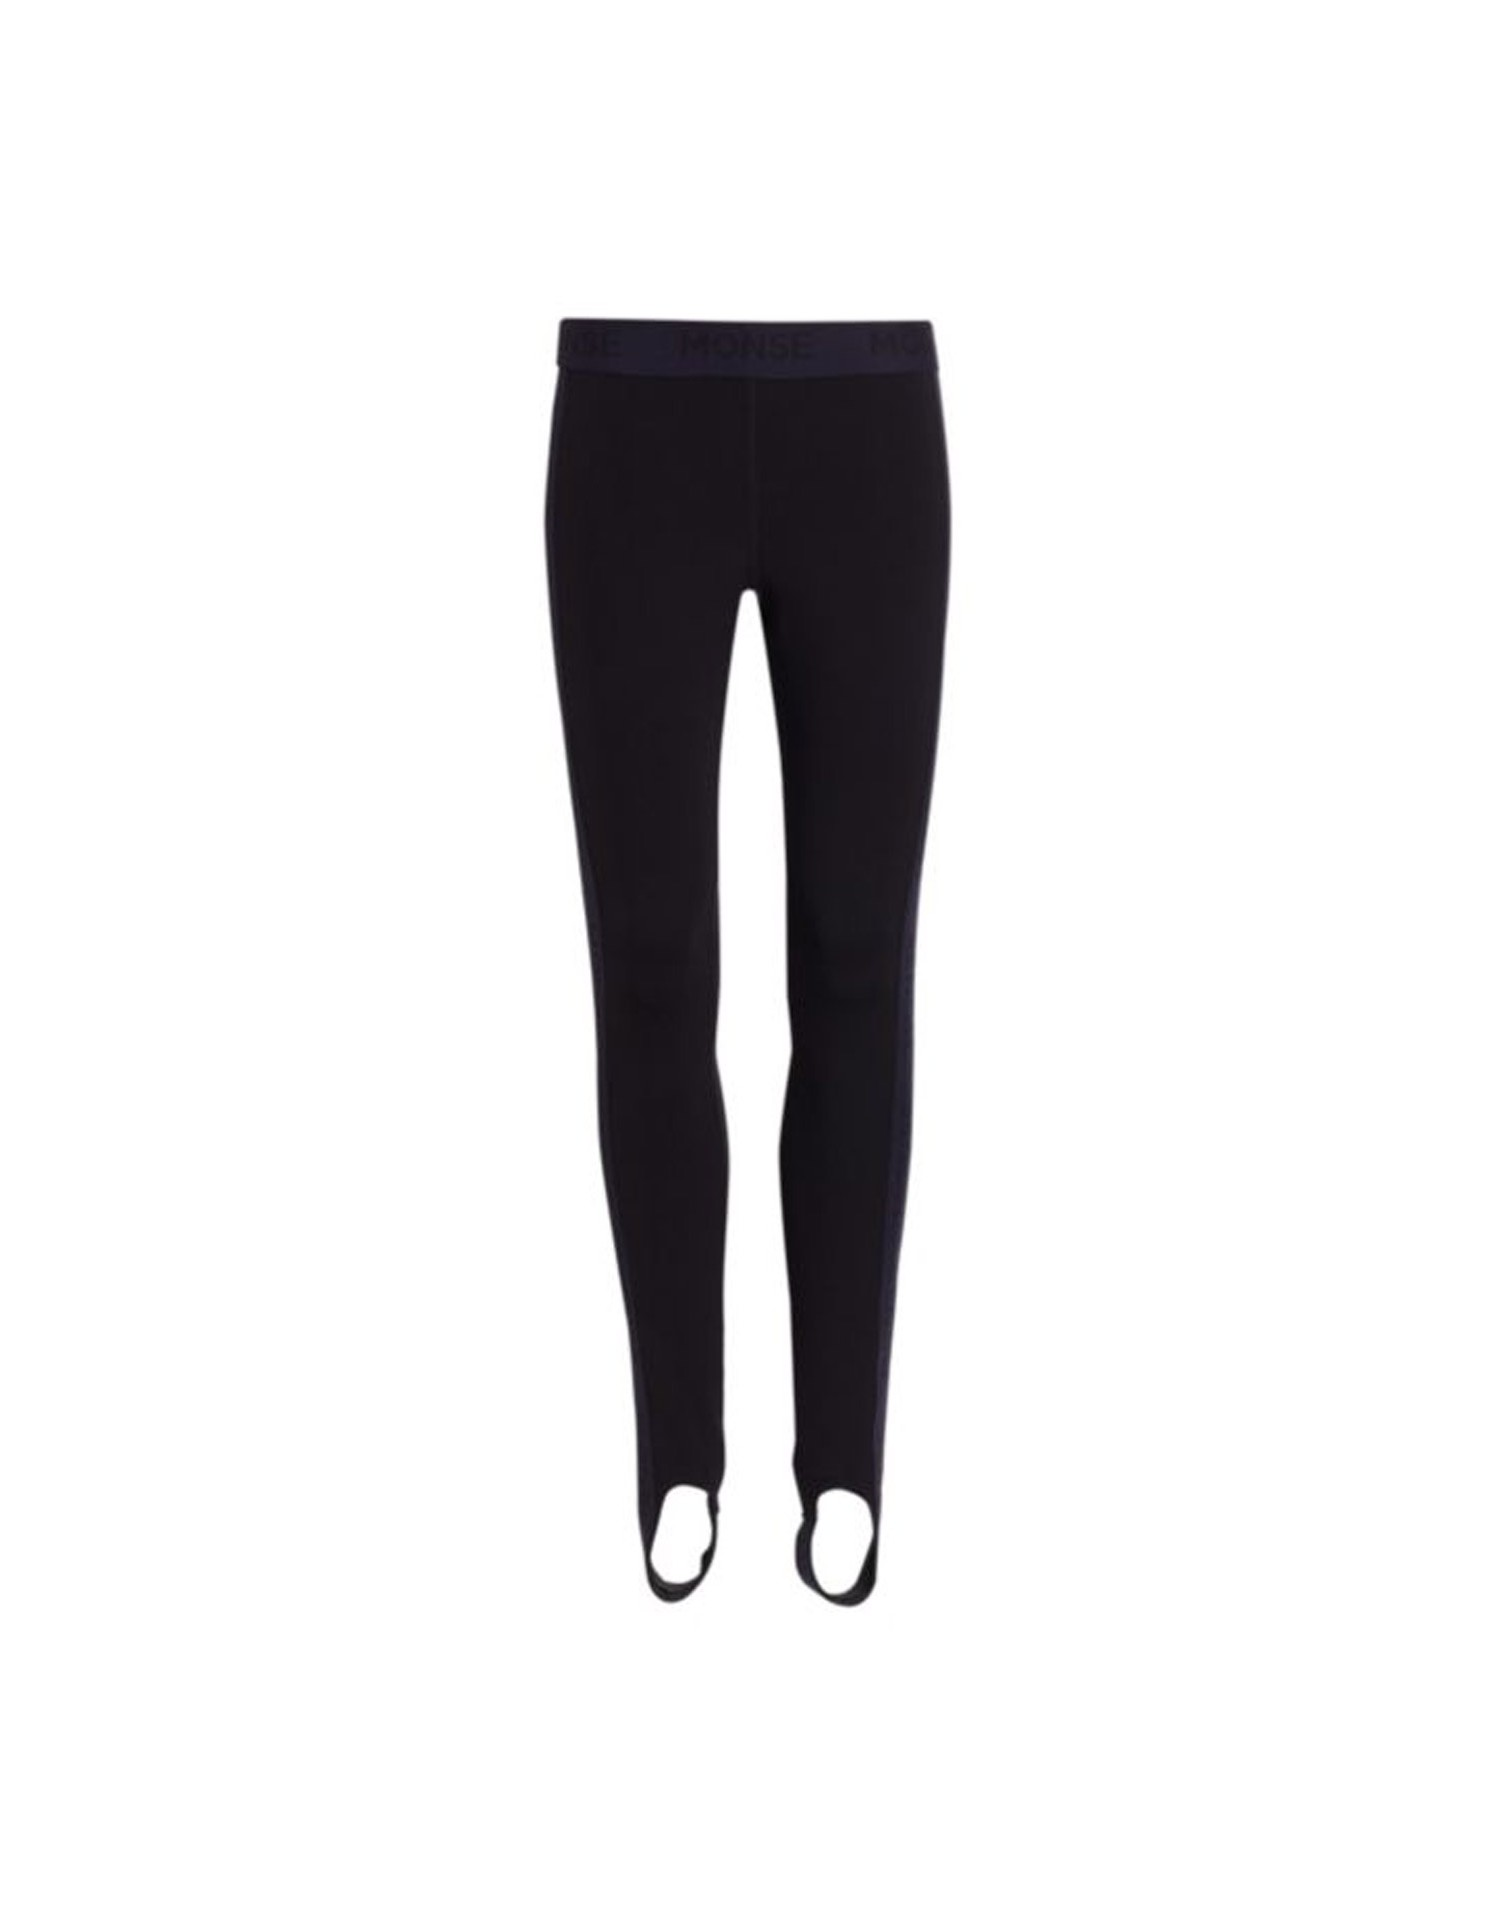 MONSE Stirrup Leggings in Black Flat Front